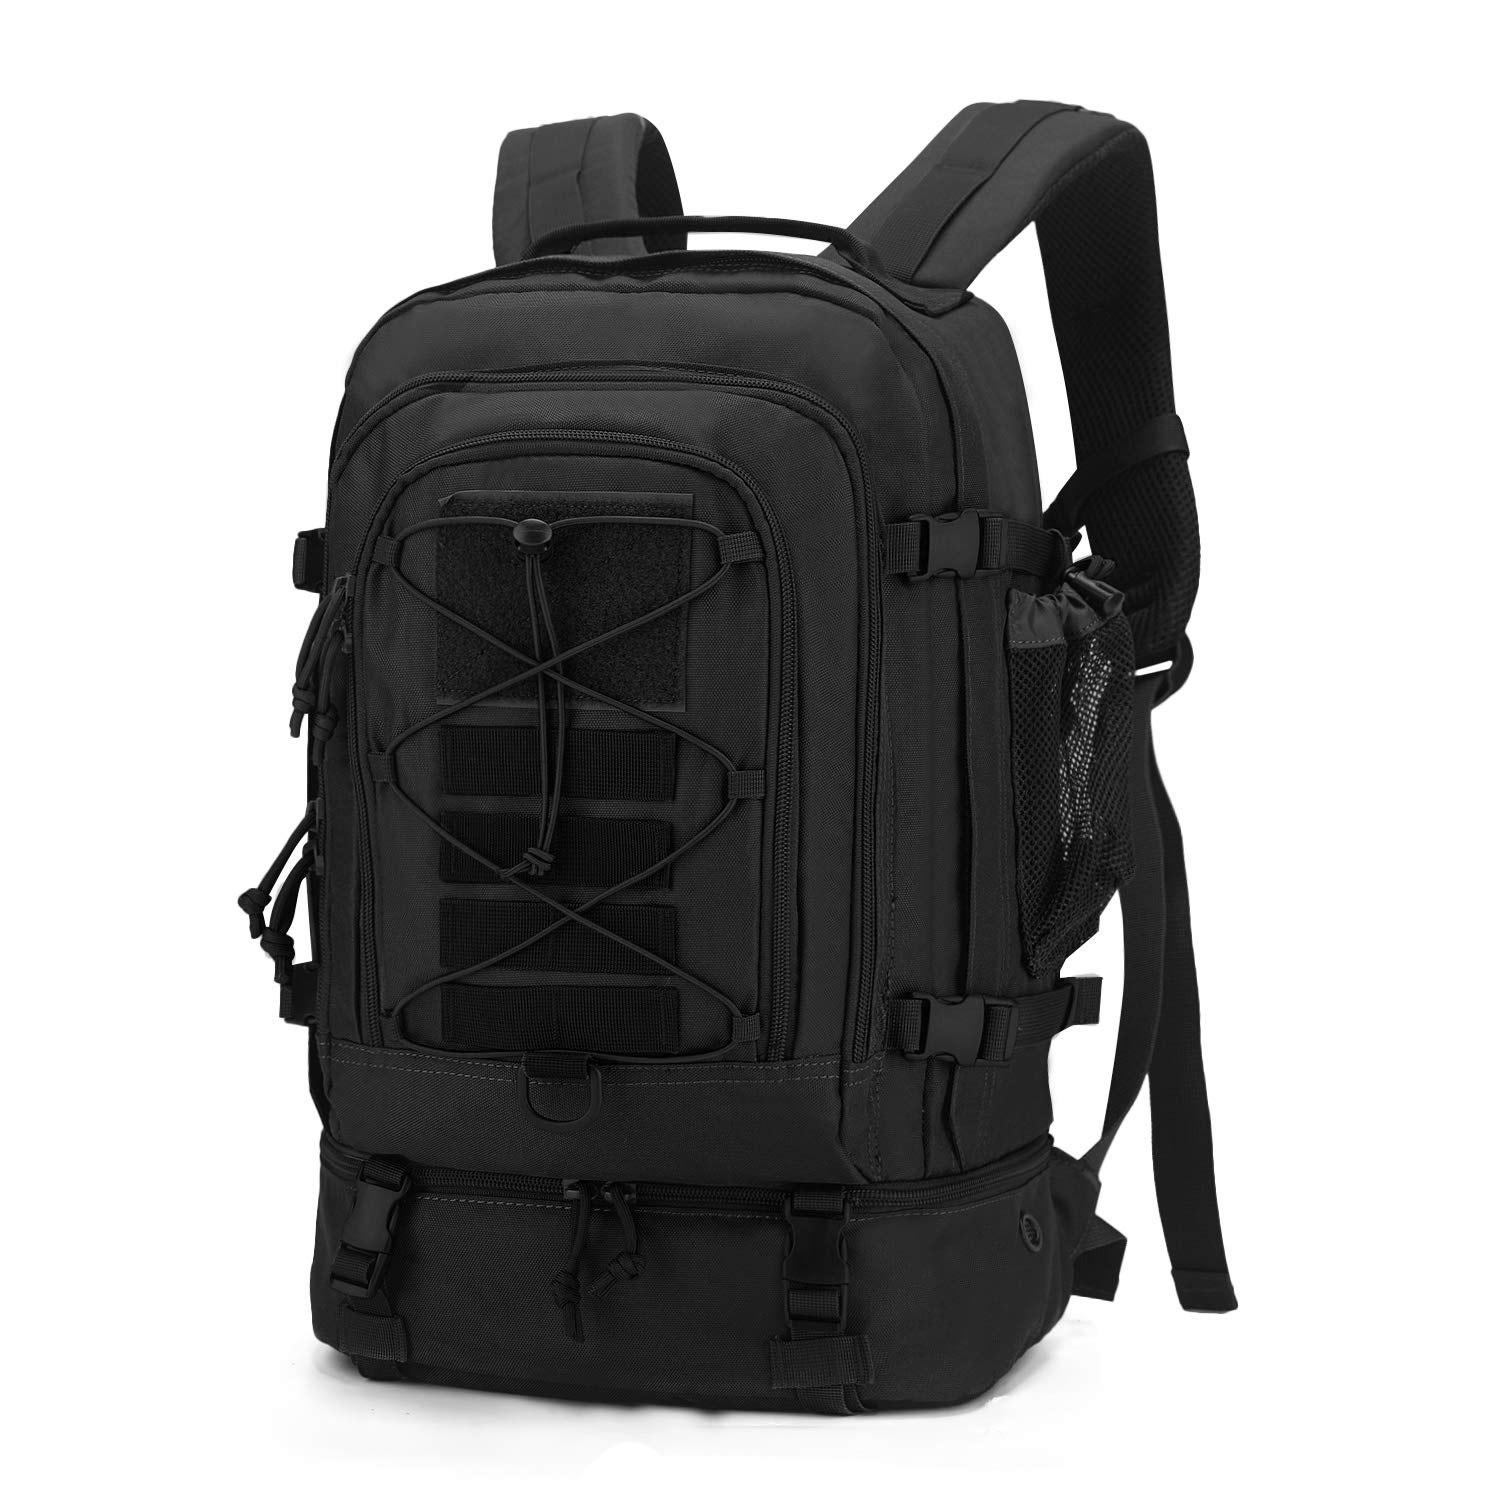 Mardingtop 28L Tactical Backpacks Molle Hiking daypacks for Camping Hiking Military Traveling (28L-Black, 28L)